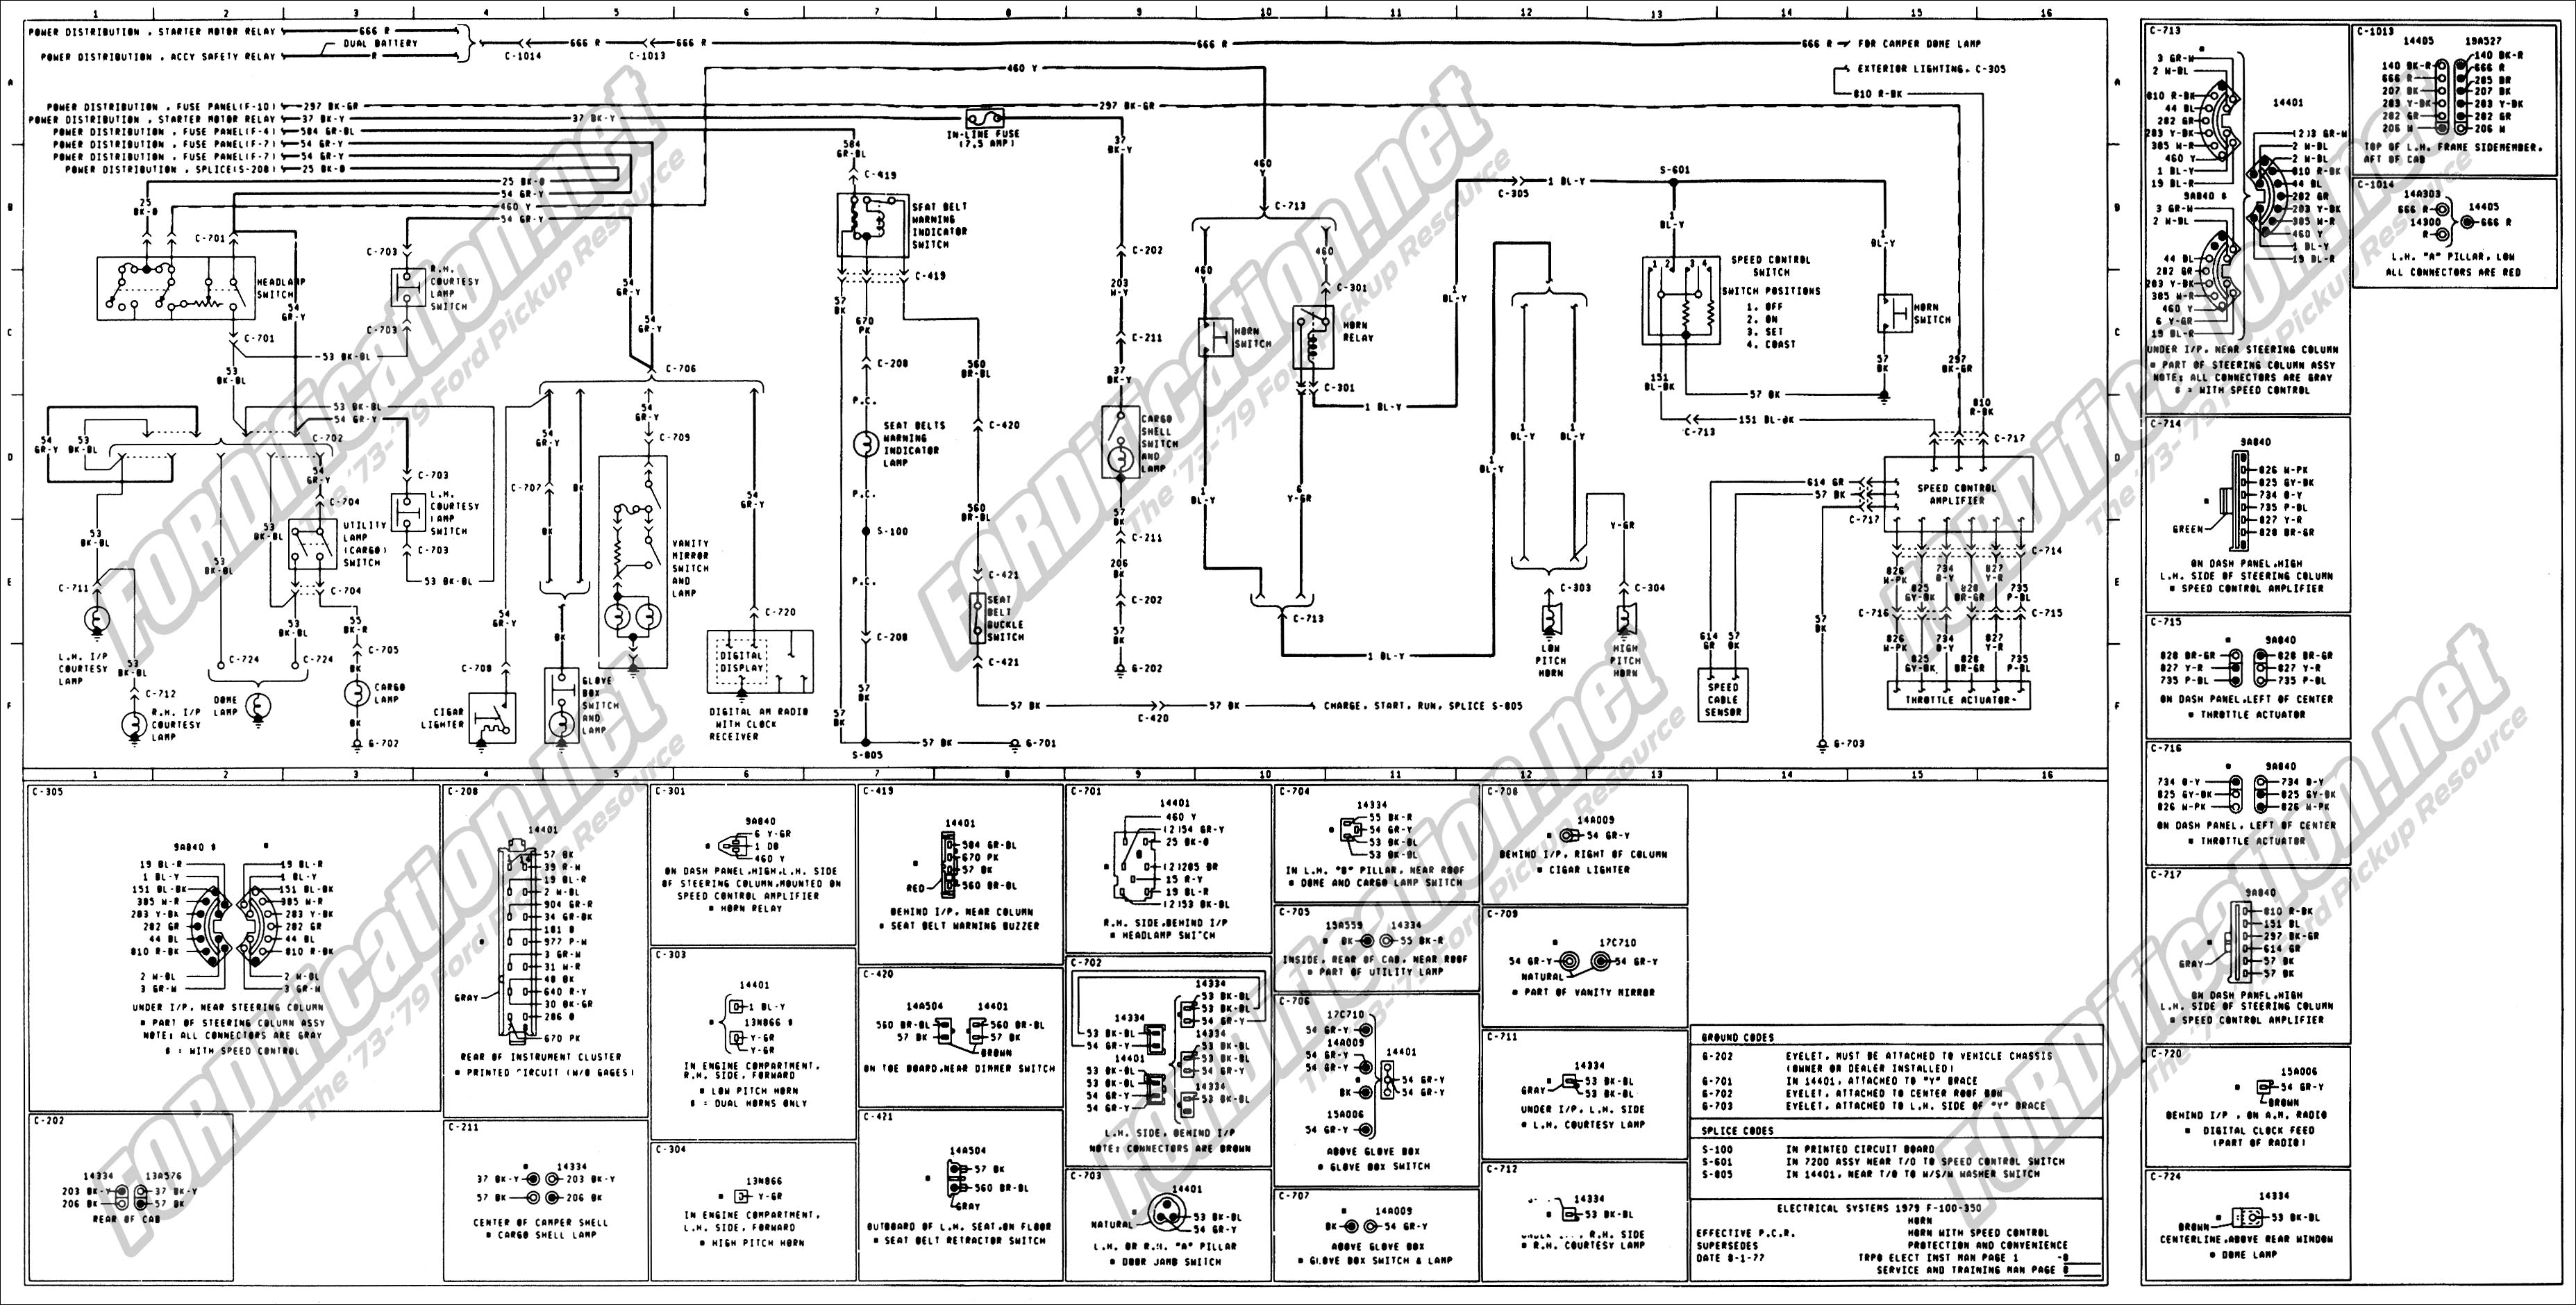 Alternator Wiring Diagrams 1991 F600 Ford Truck List Of Schematic 91 Alfa Romeo Spider Diagram For 79 Simple Rh David Huggett Co Uk